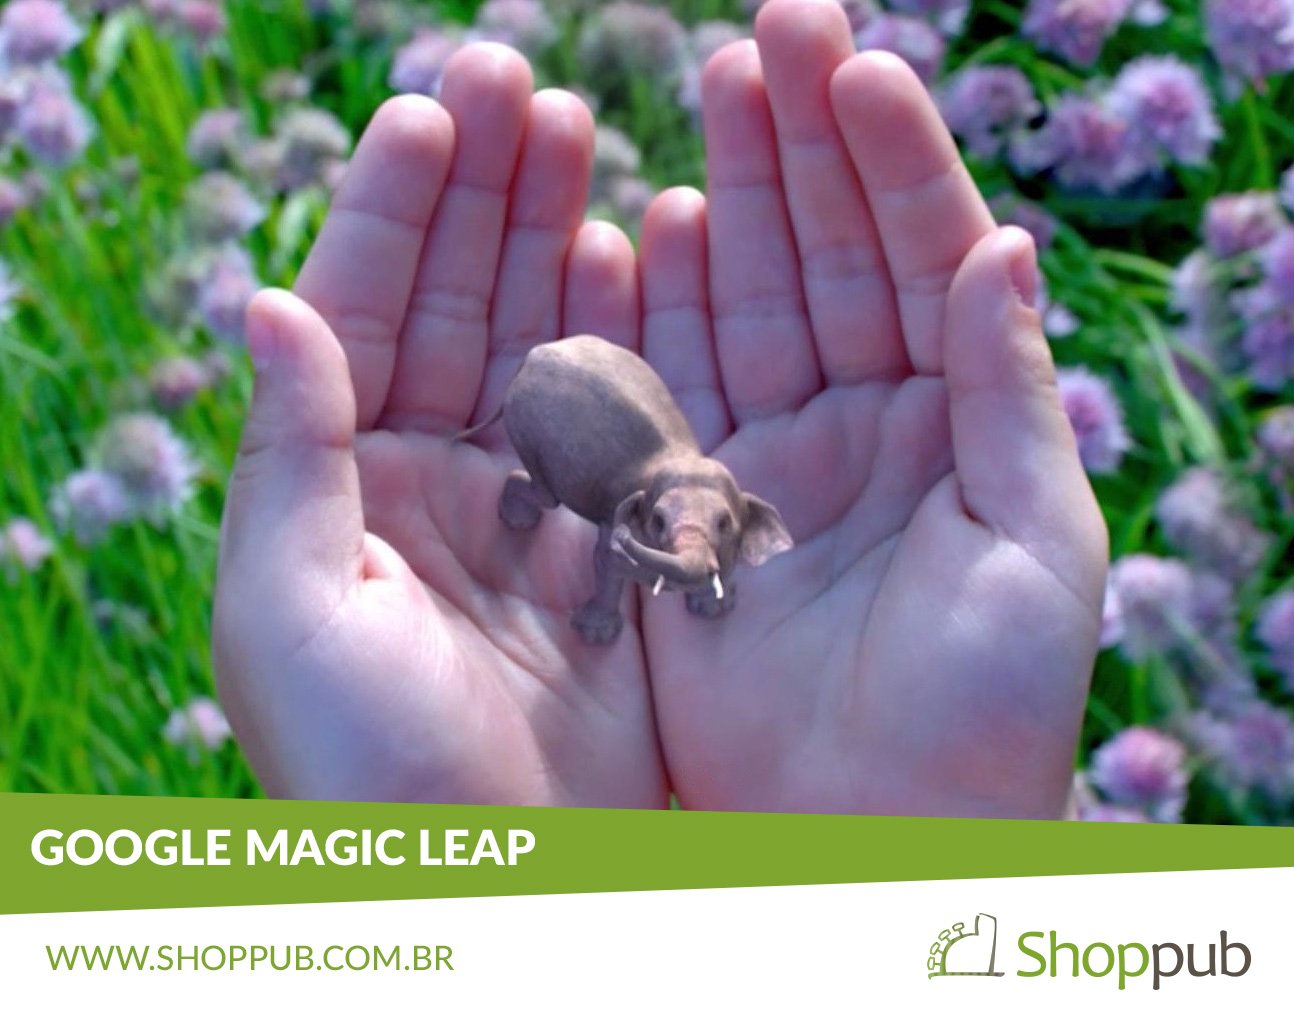 Google Magic Leap